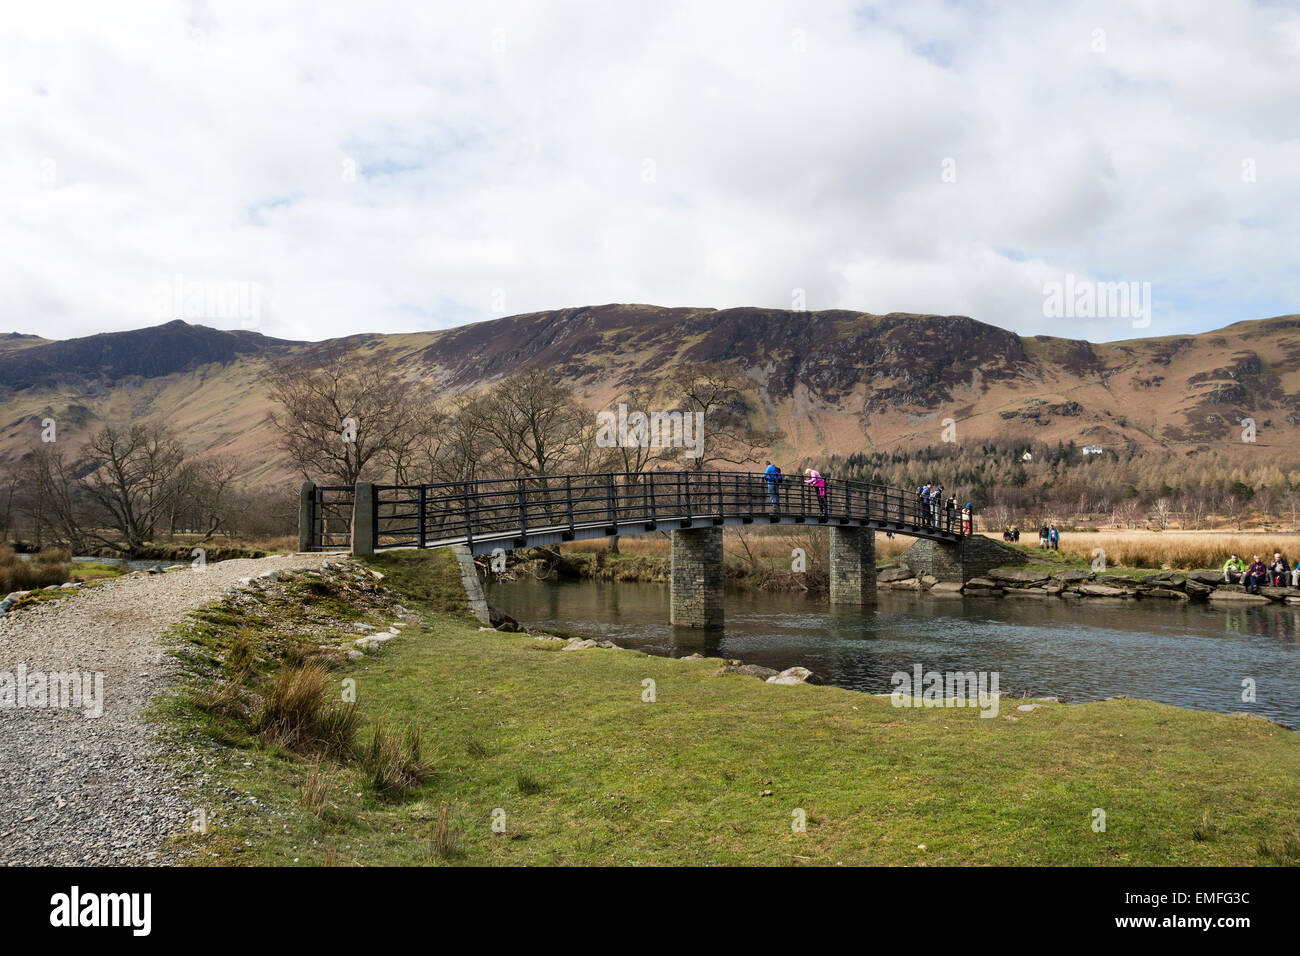 Walkers on a Busy Easter Weekend Enjoying the View From the Footbridge Over the River Derwent  Borrowdale, Lake - Stock Image